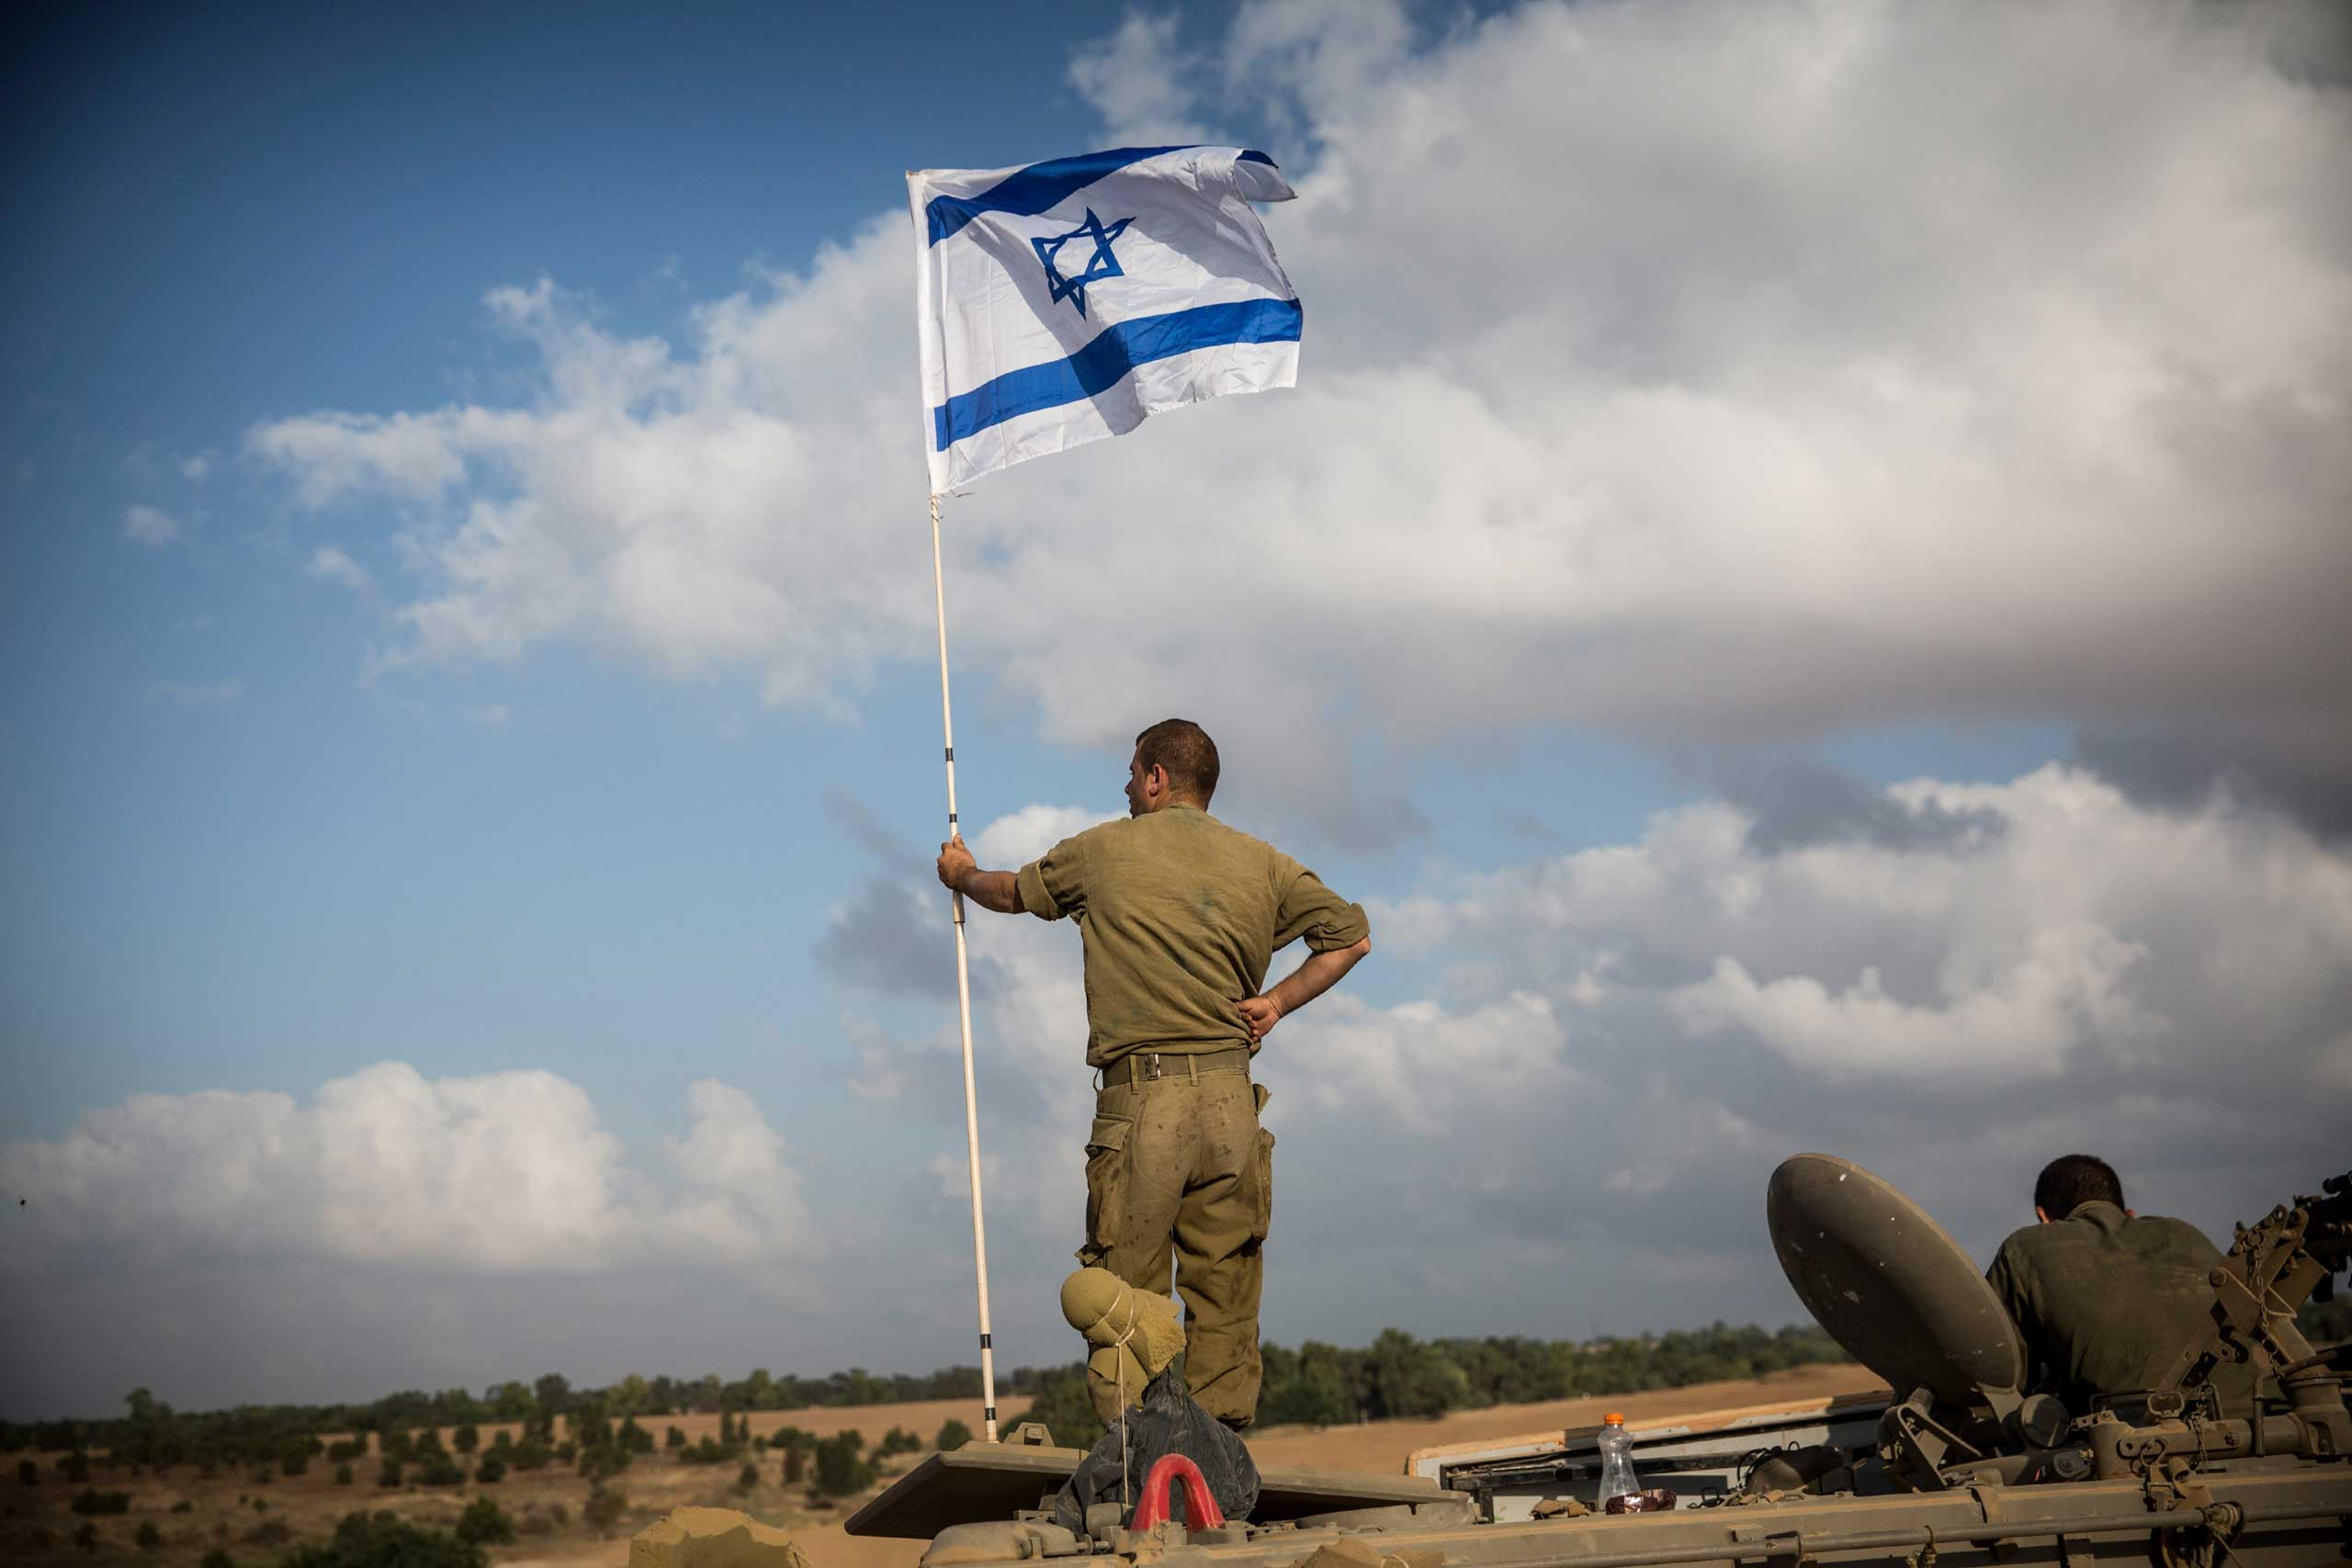 An Israeli soldier stands on top of an armored personnel carrier close to the Israel-Gaza border near Sderot, Israel, July 15, 2014.